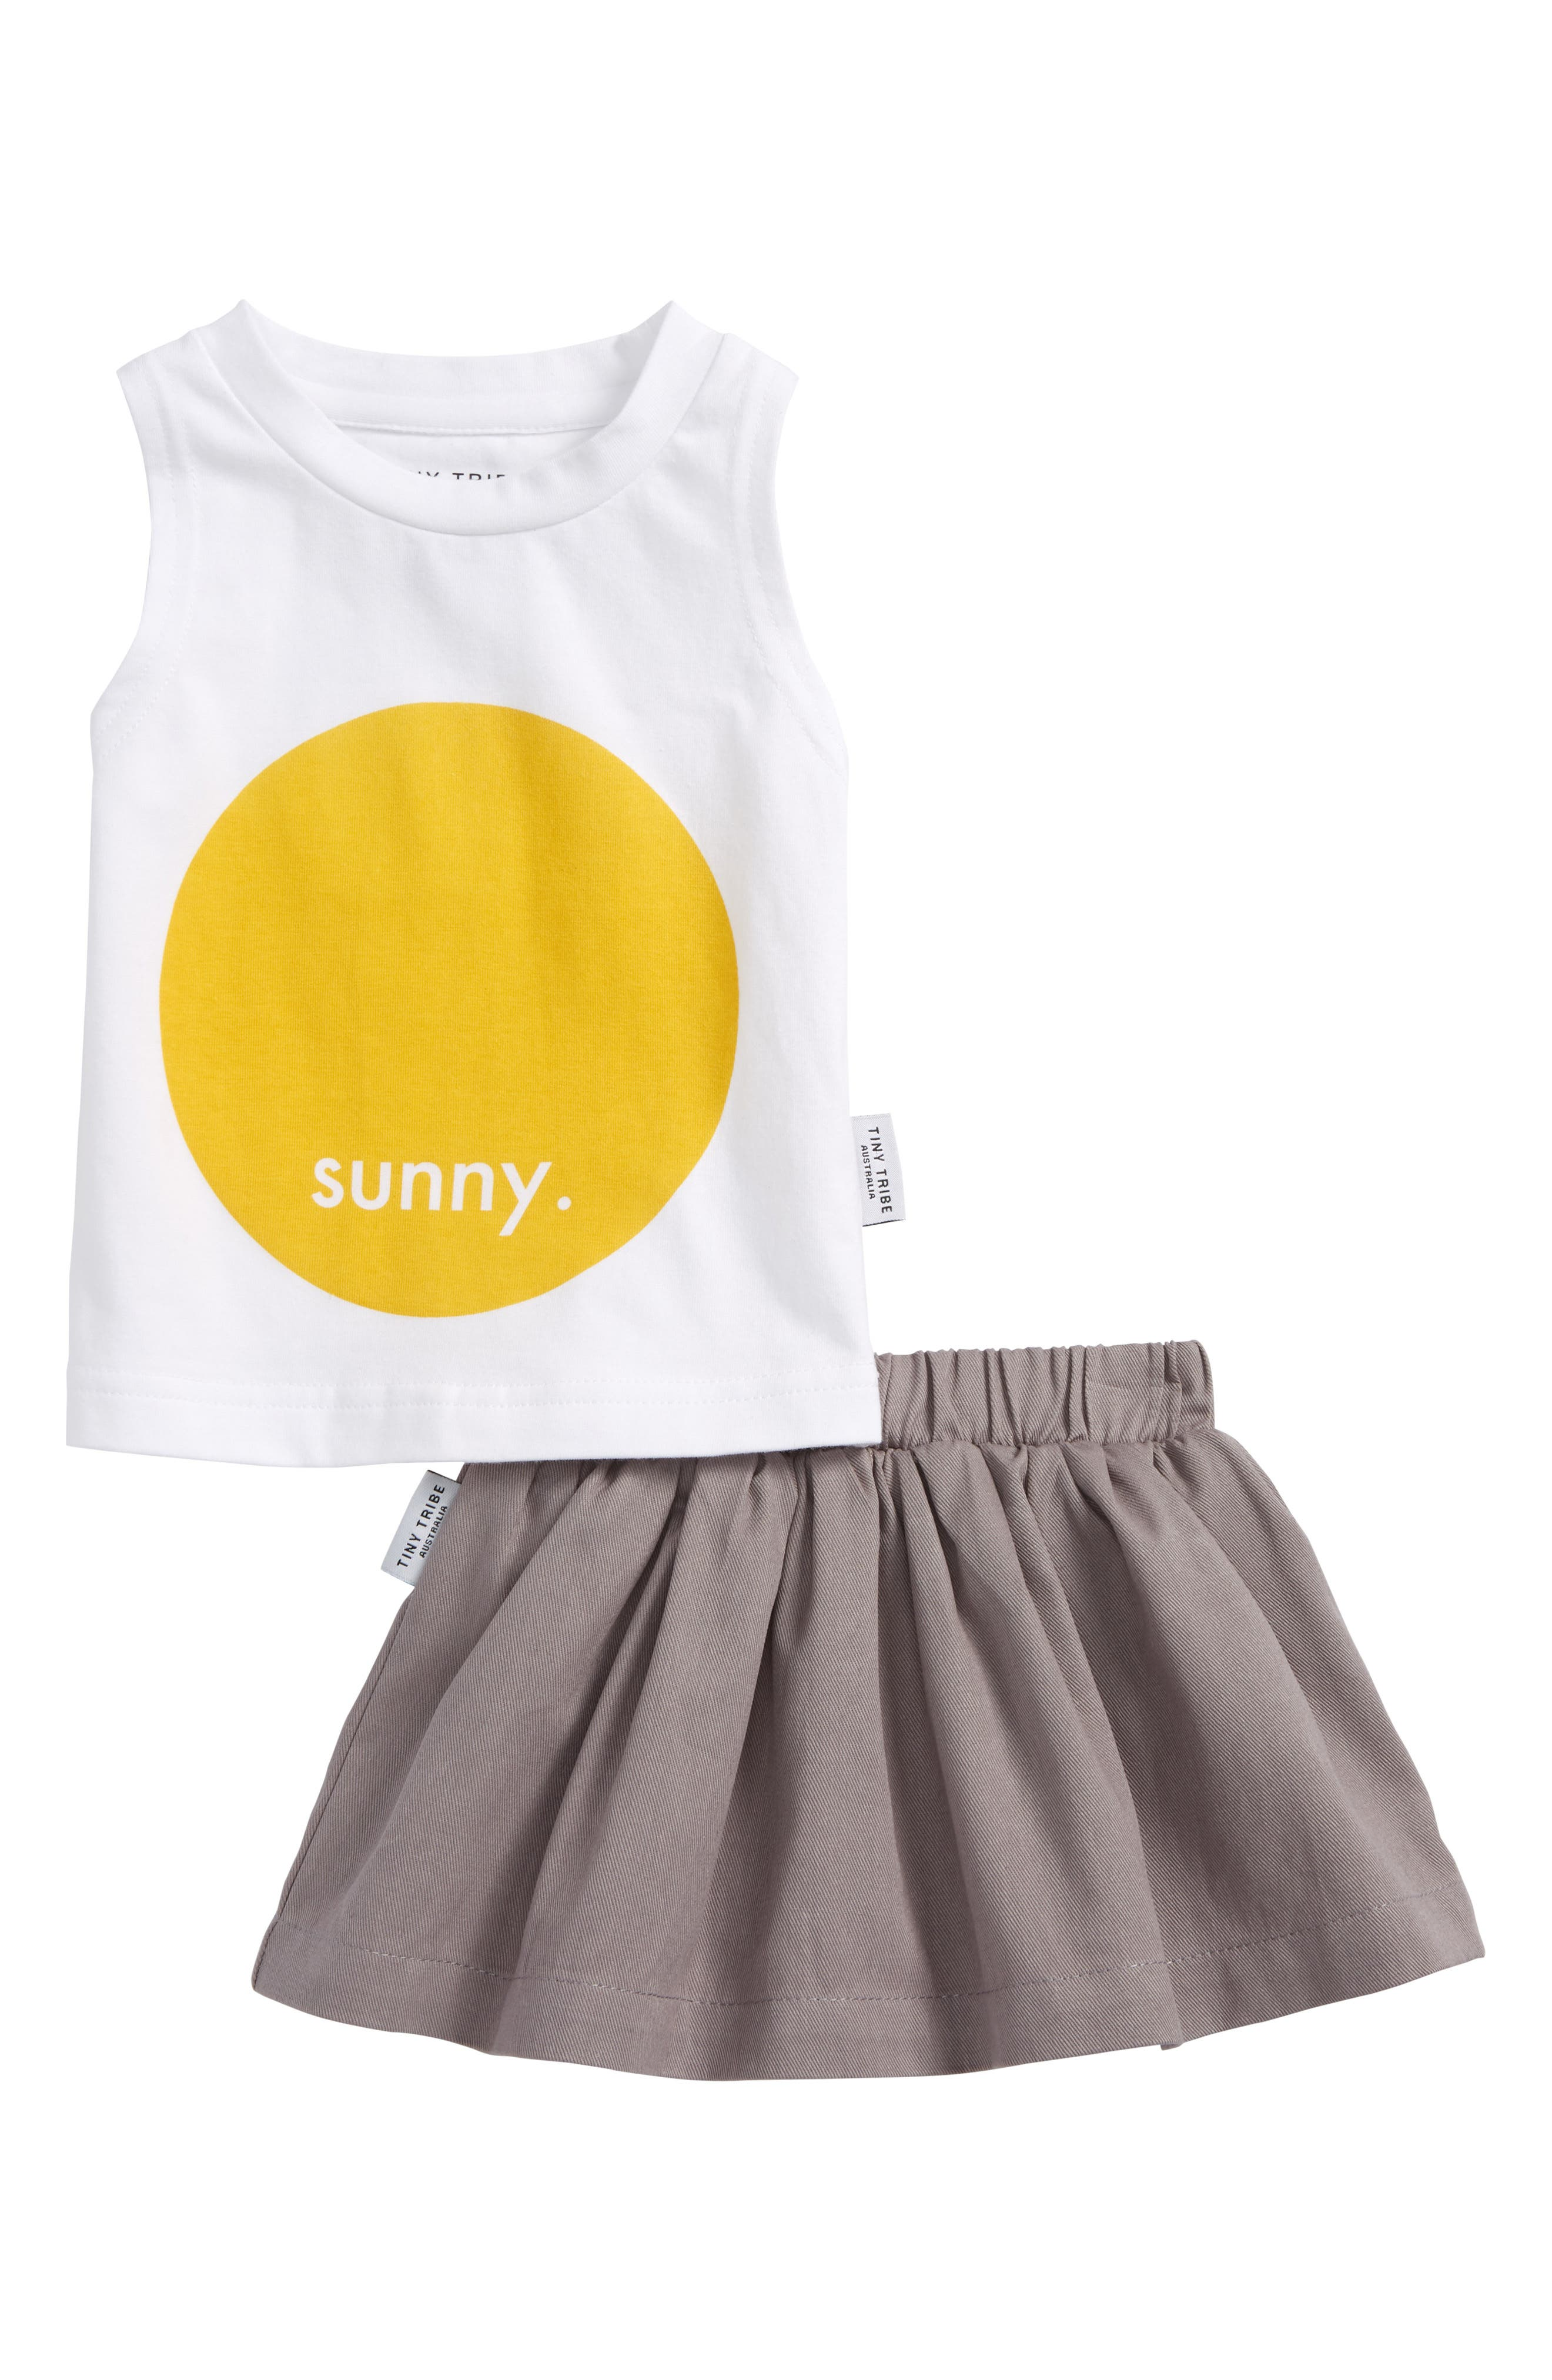 Sunny Tank & Skirt Set,                             Main thumbnail 1, color,                             100